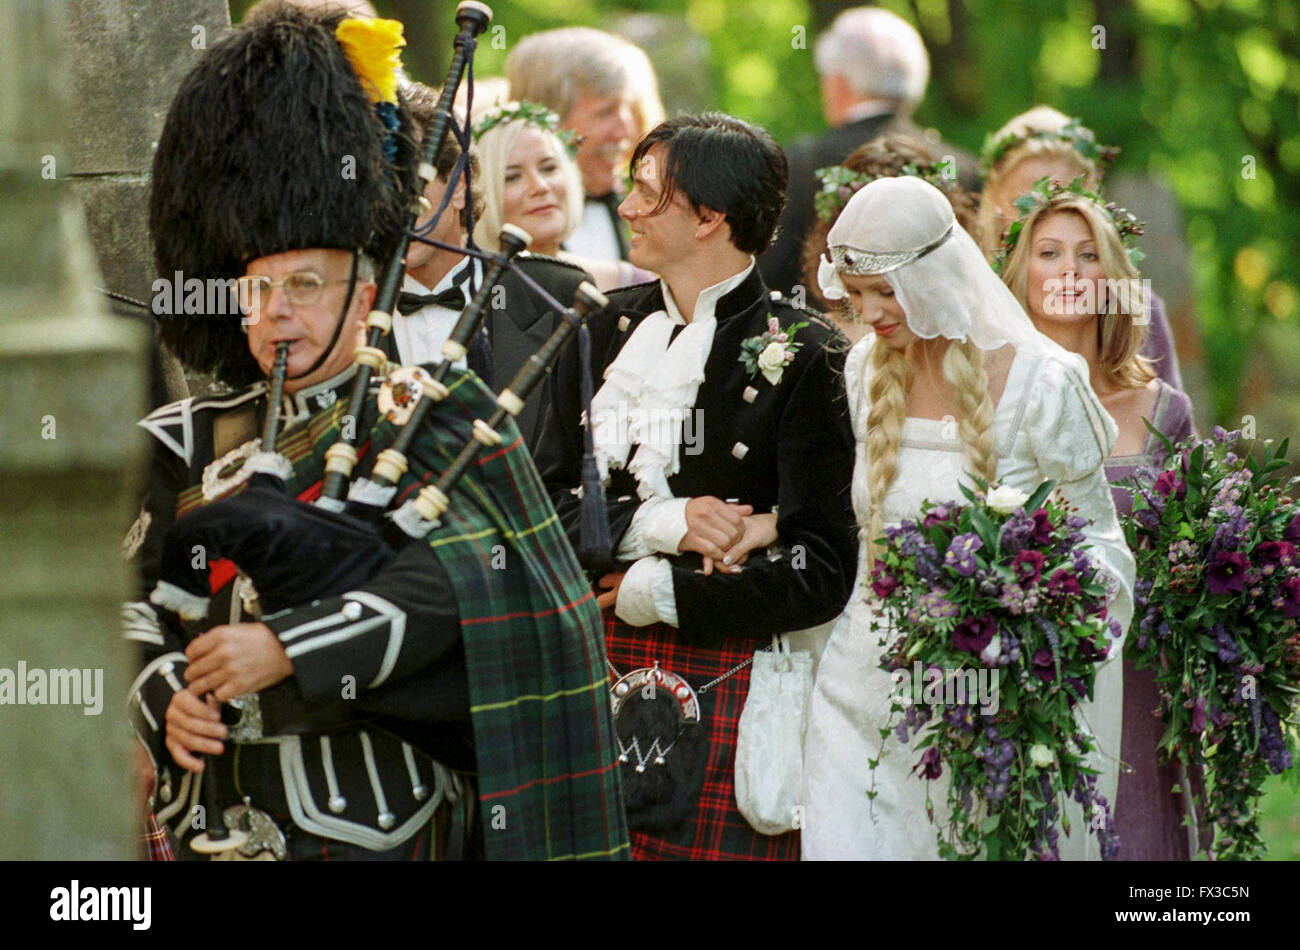 Donovan Leitch and model Kirsty Hume at their wedding in Luss, Scotland. - Stock Image